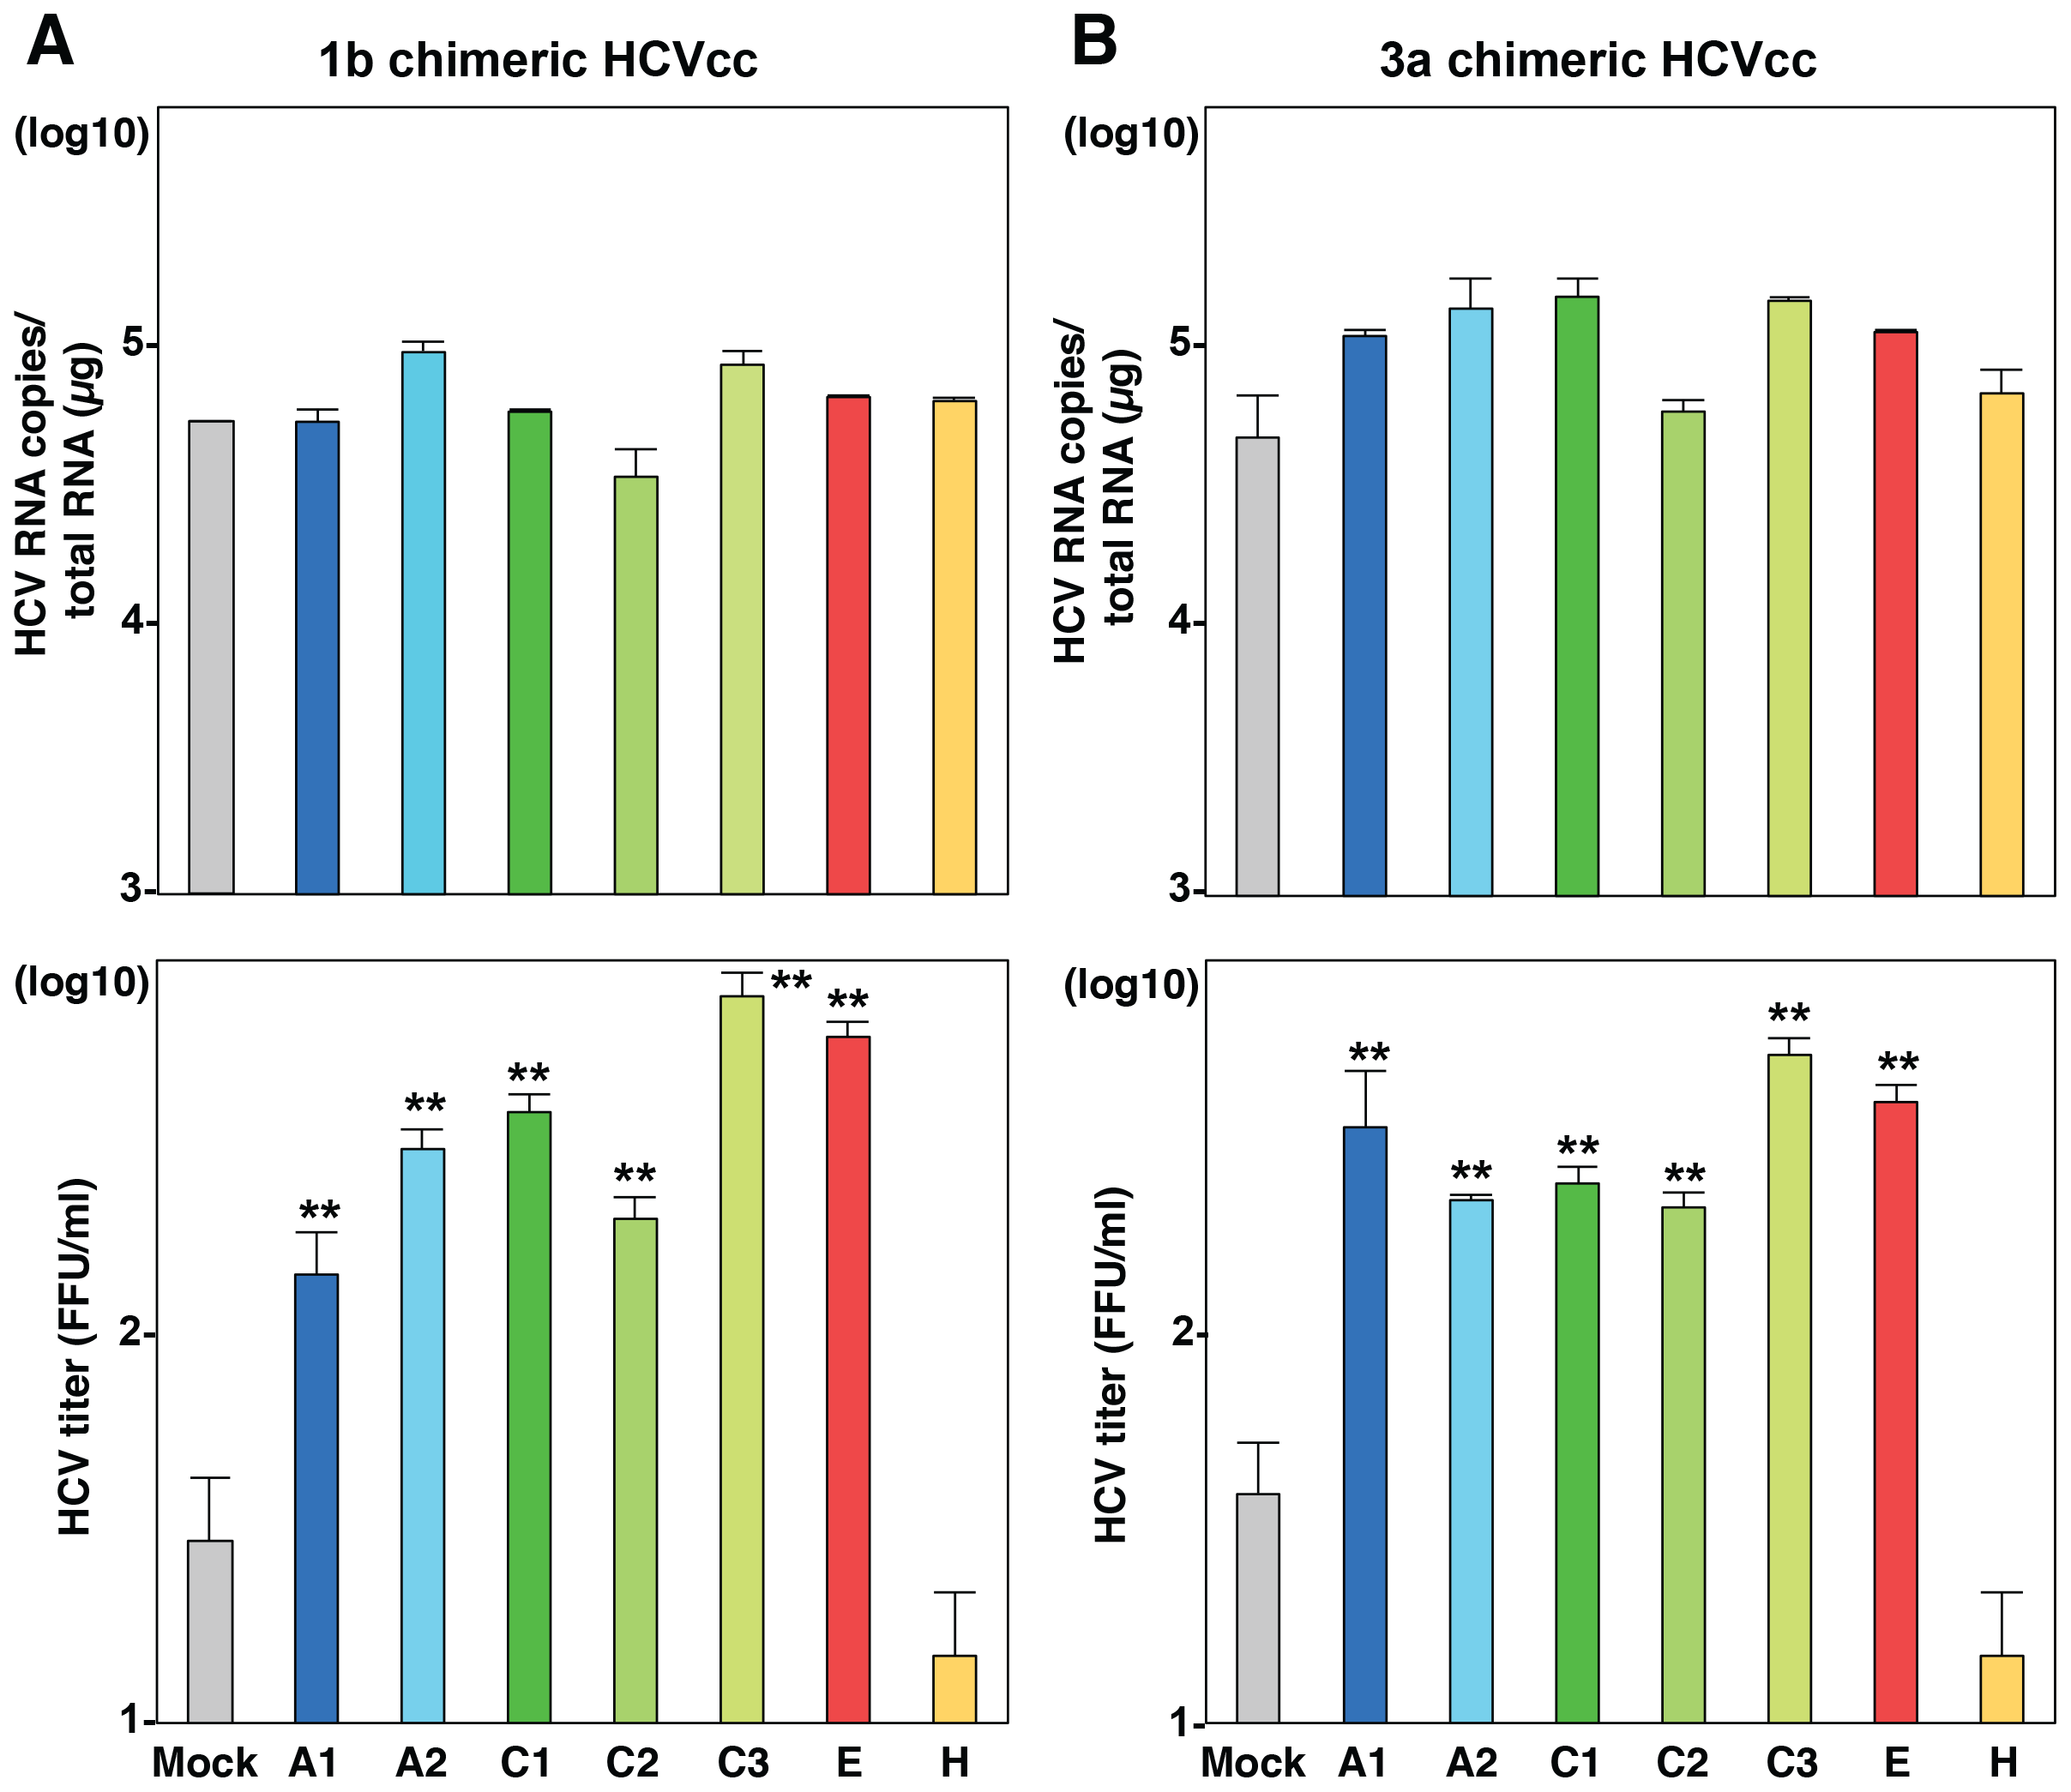 Exchangeable apolipoproteins participate in the formation of infectious HCV particles of genotype 1 and 3.